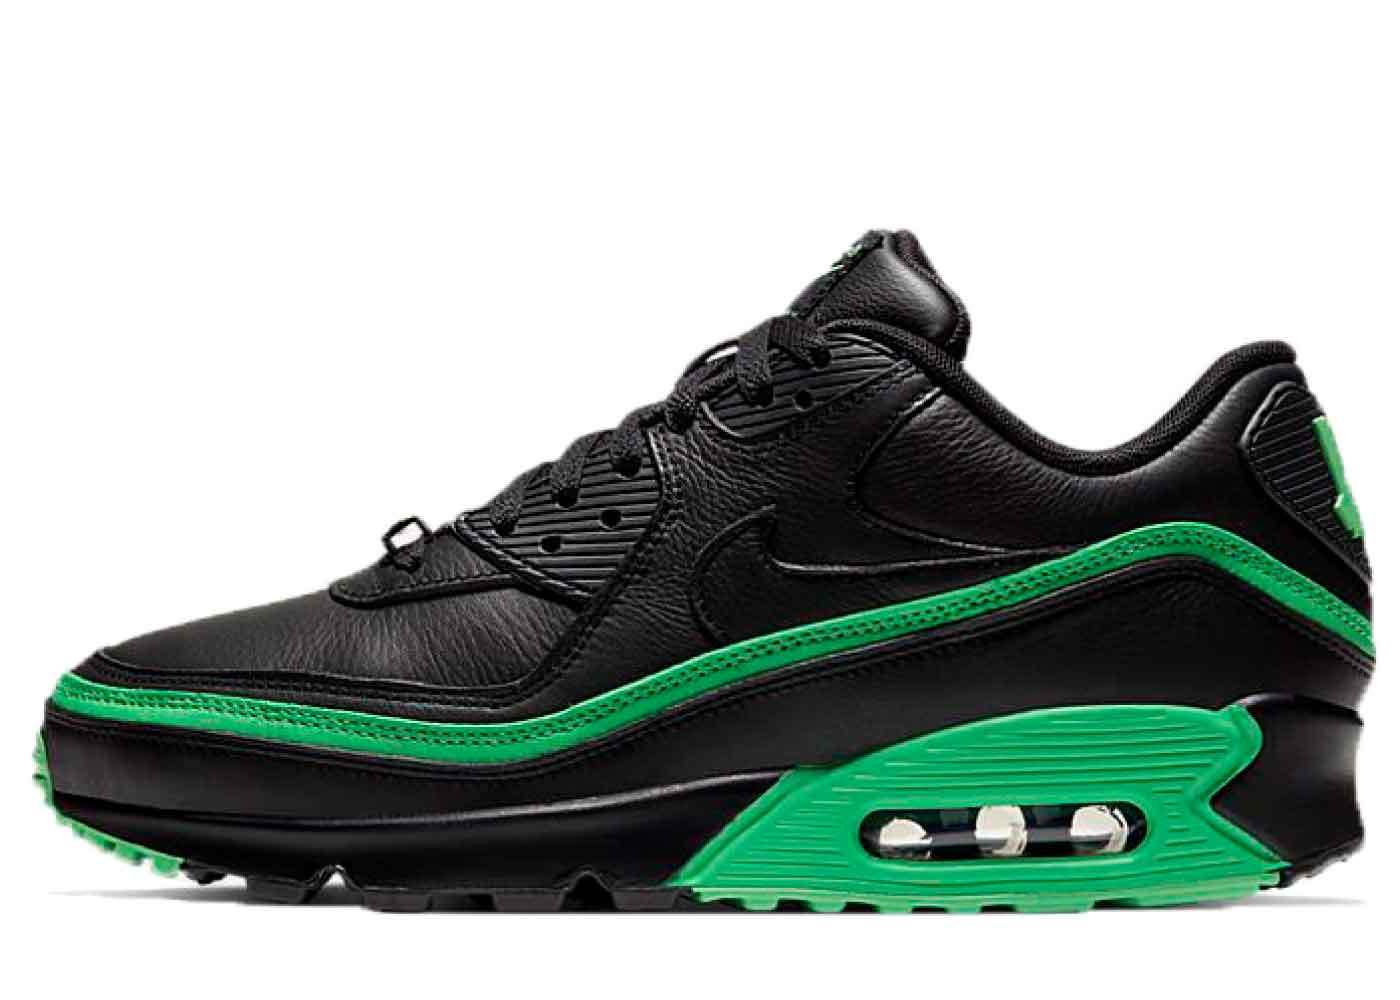 Nike Air Max 90 Undefeated Black Green Sparkの写真